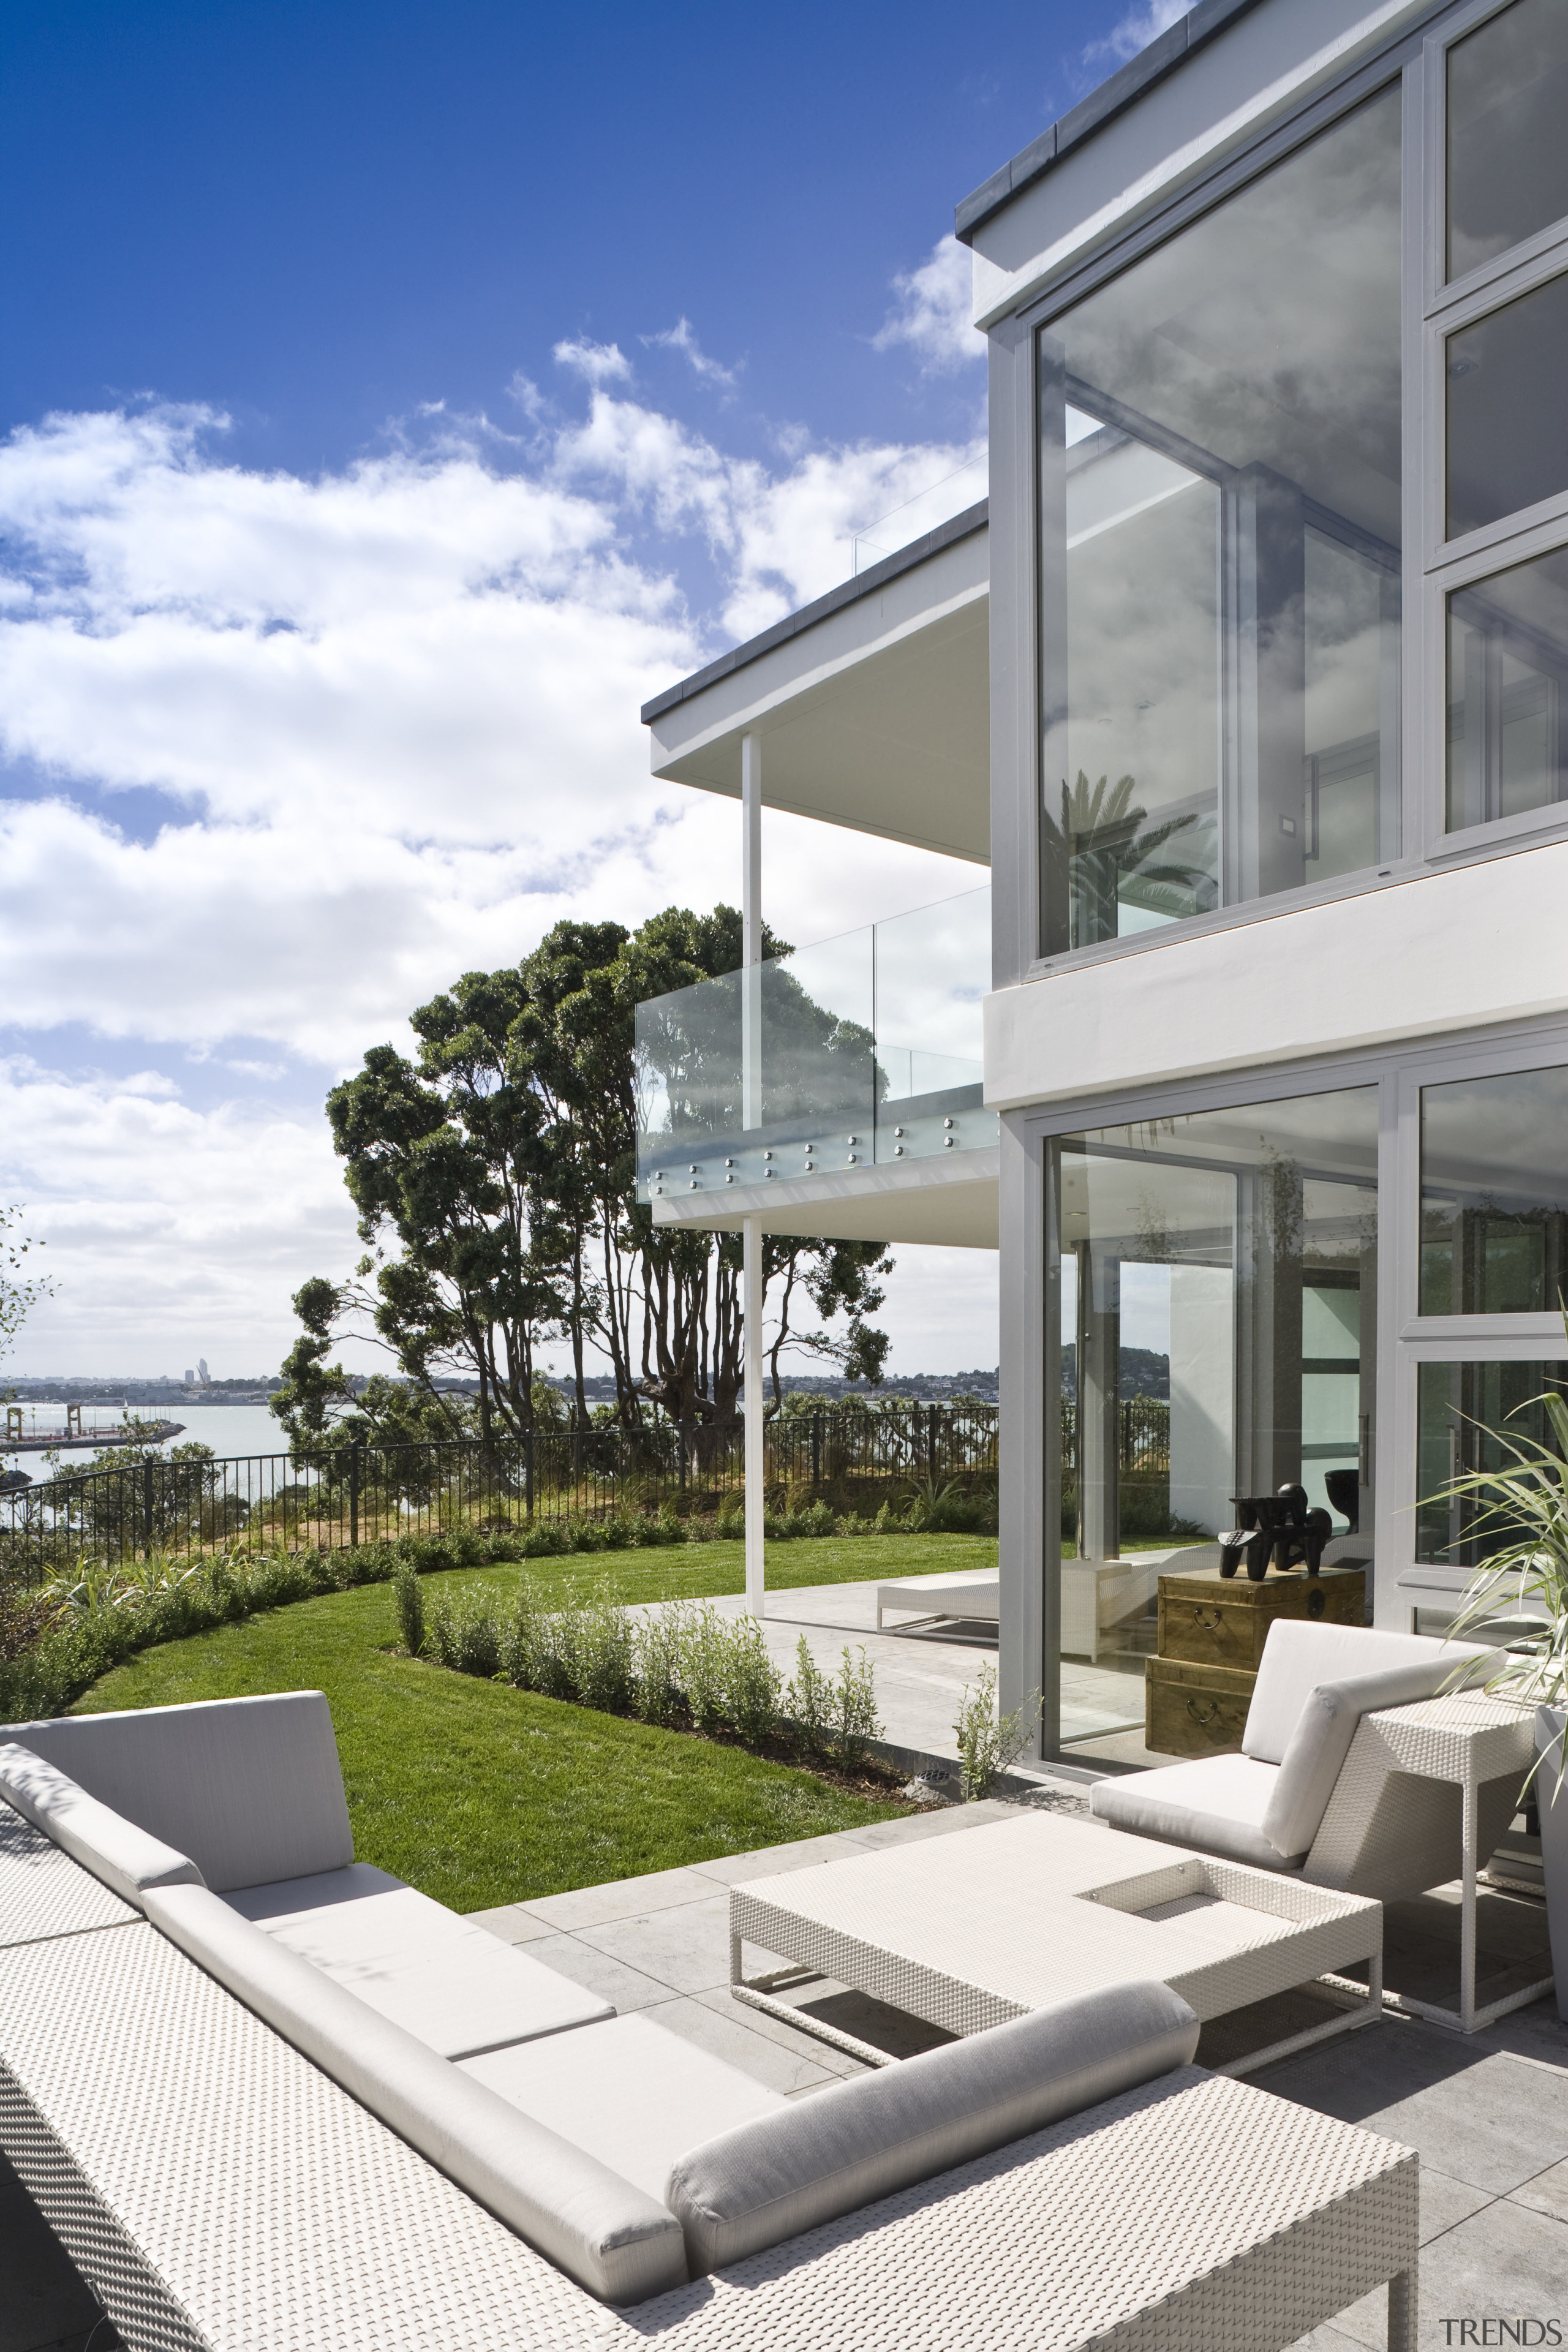 Exterior view of a Parnell apartment complex which apartment, architecture, condominium, daylighting, estate, home, house, mixed use, outdoor furniture, property, real estate, residential area, sunlounger, window, white, gray